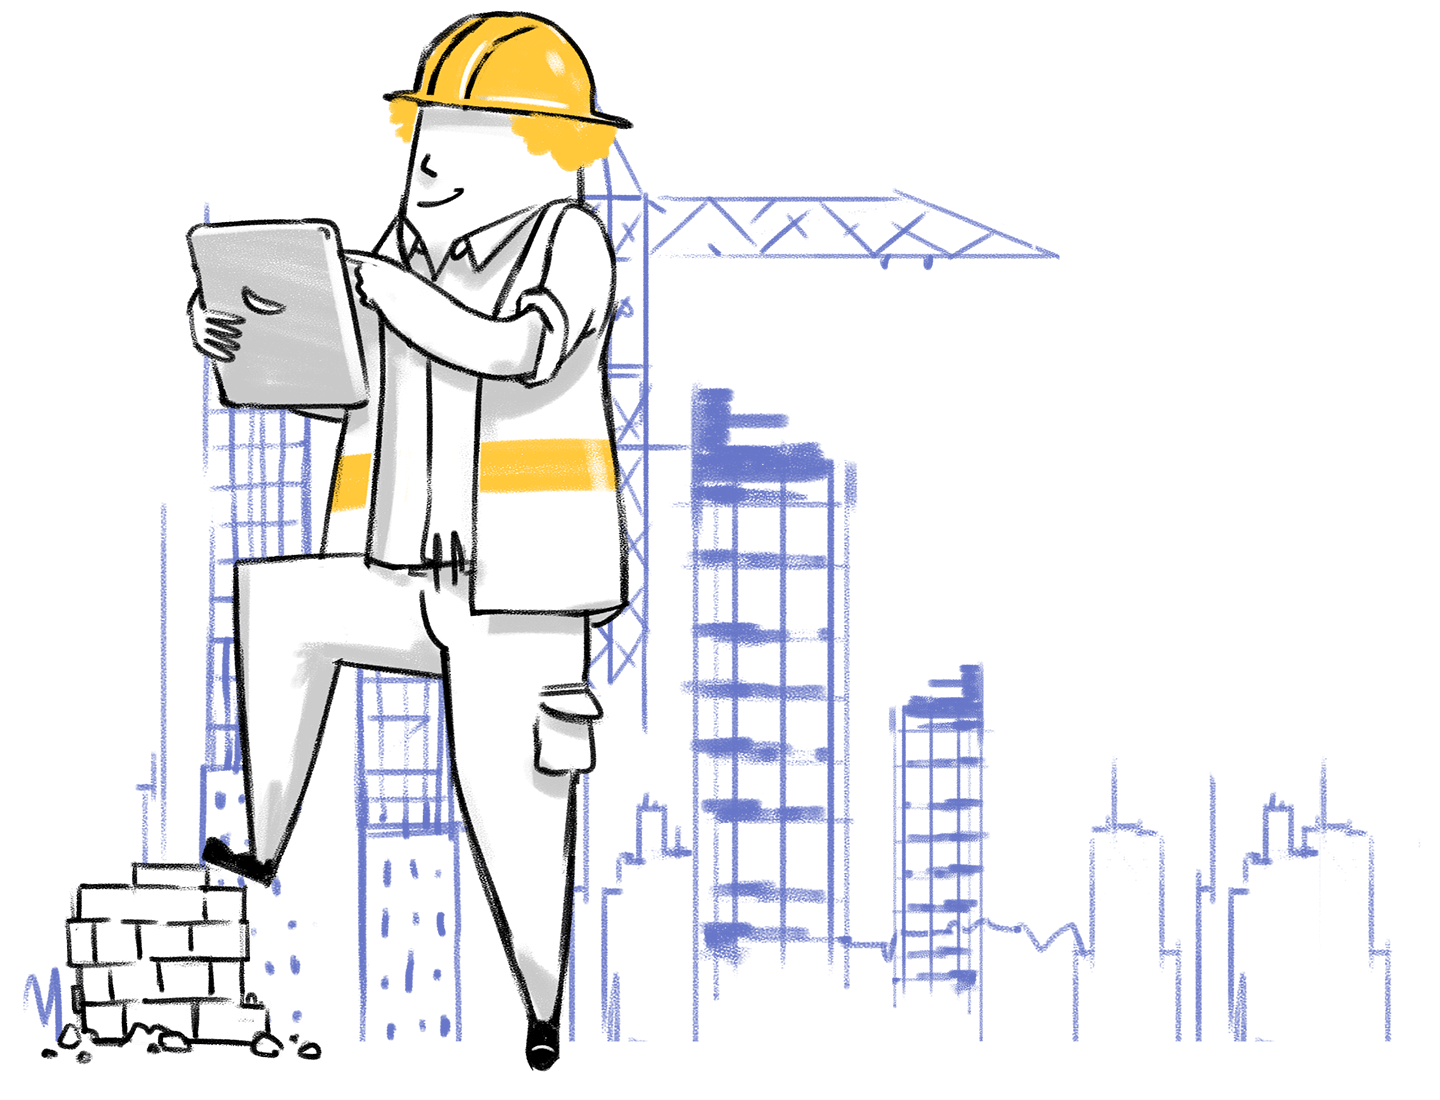 Project Management: Construction Project Management Software– Zoho Projects